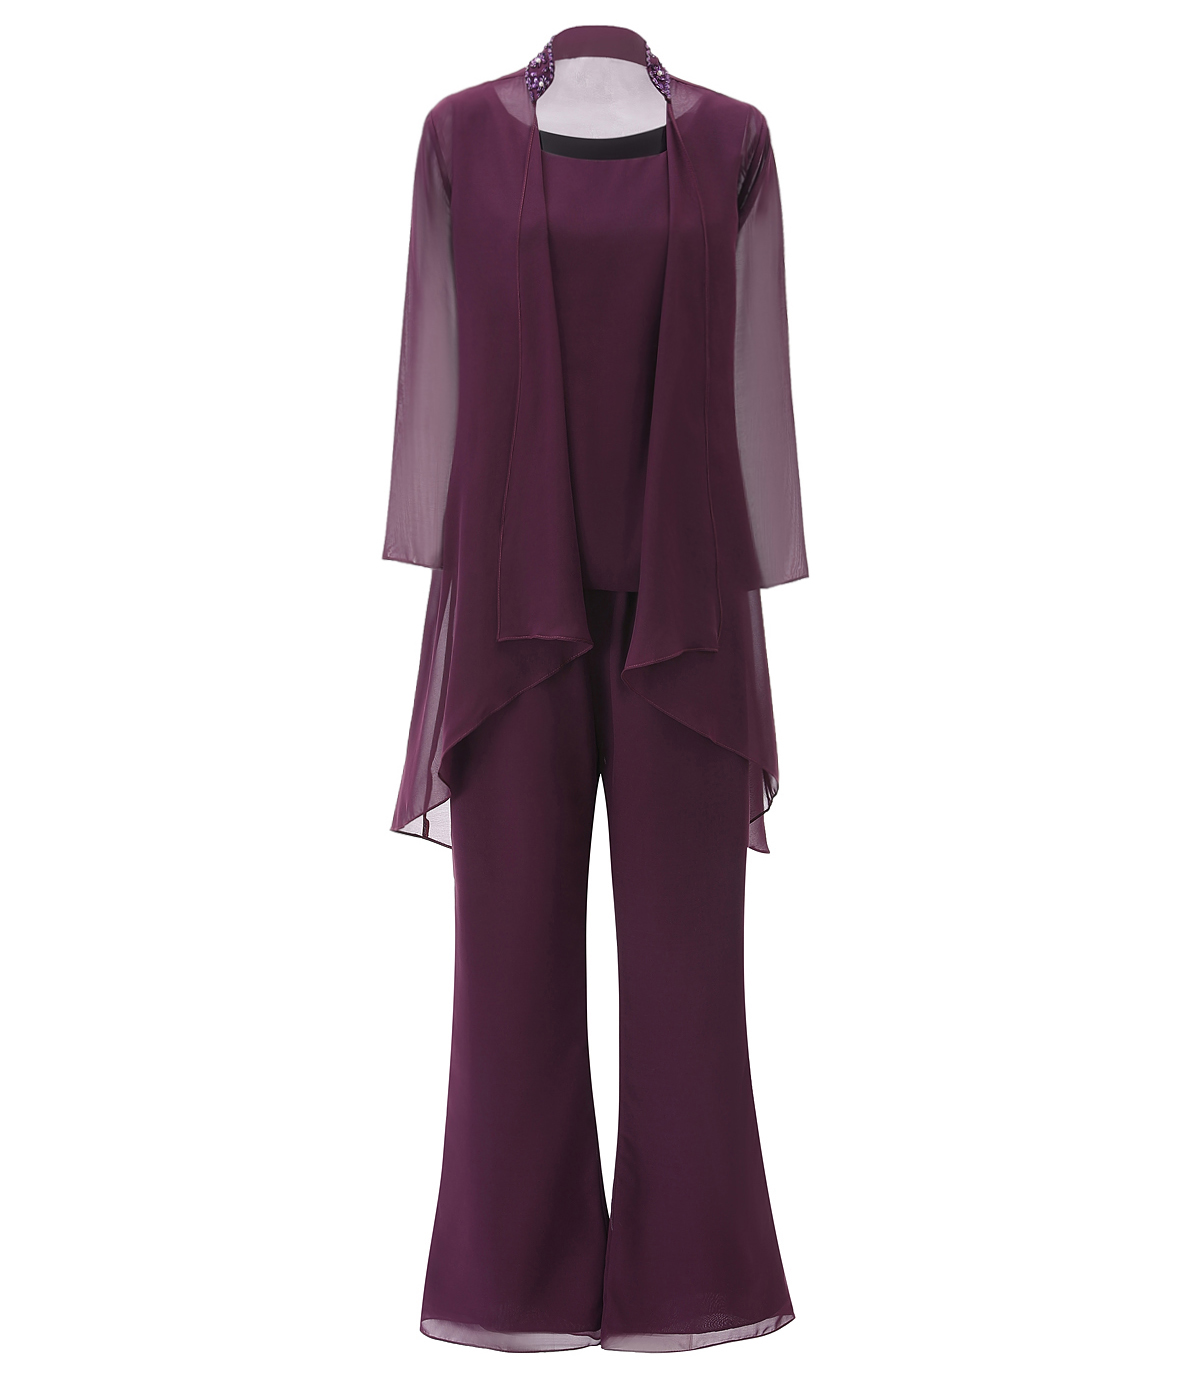 SOLOVEDRESS Fashion Women Chiffon Beading 3 Pieces Mother Of The Bride Dress Pant Suits With Long Sleeves Jacket Outfit  SL-M18